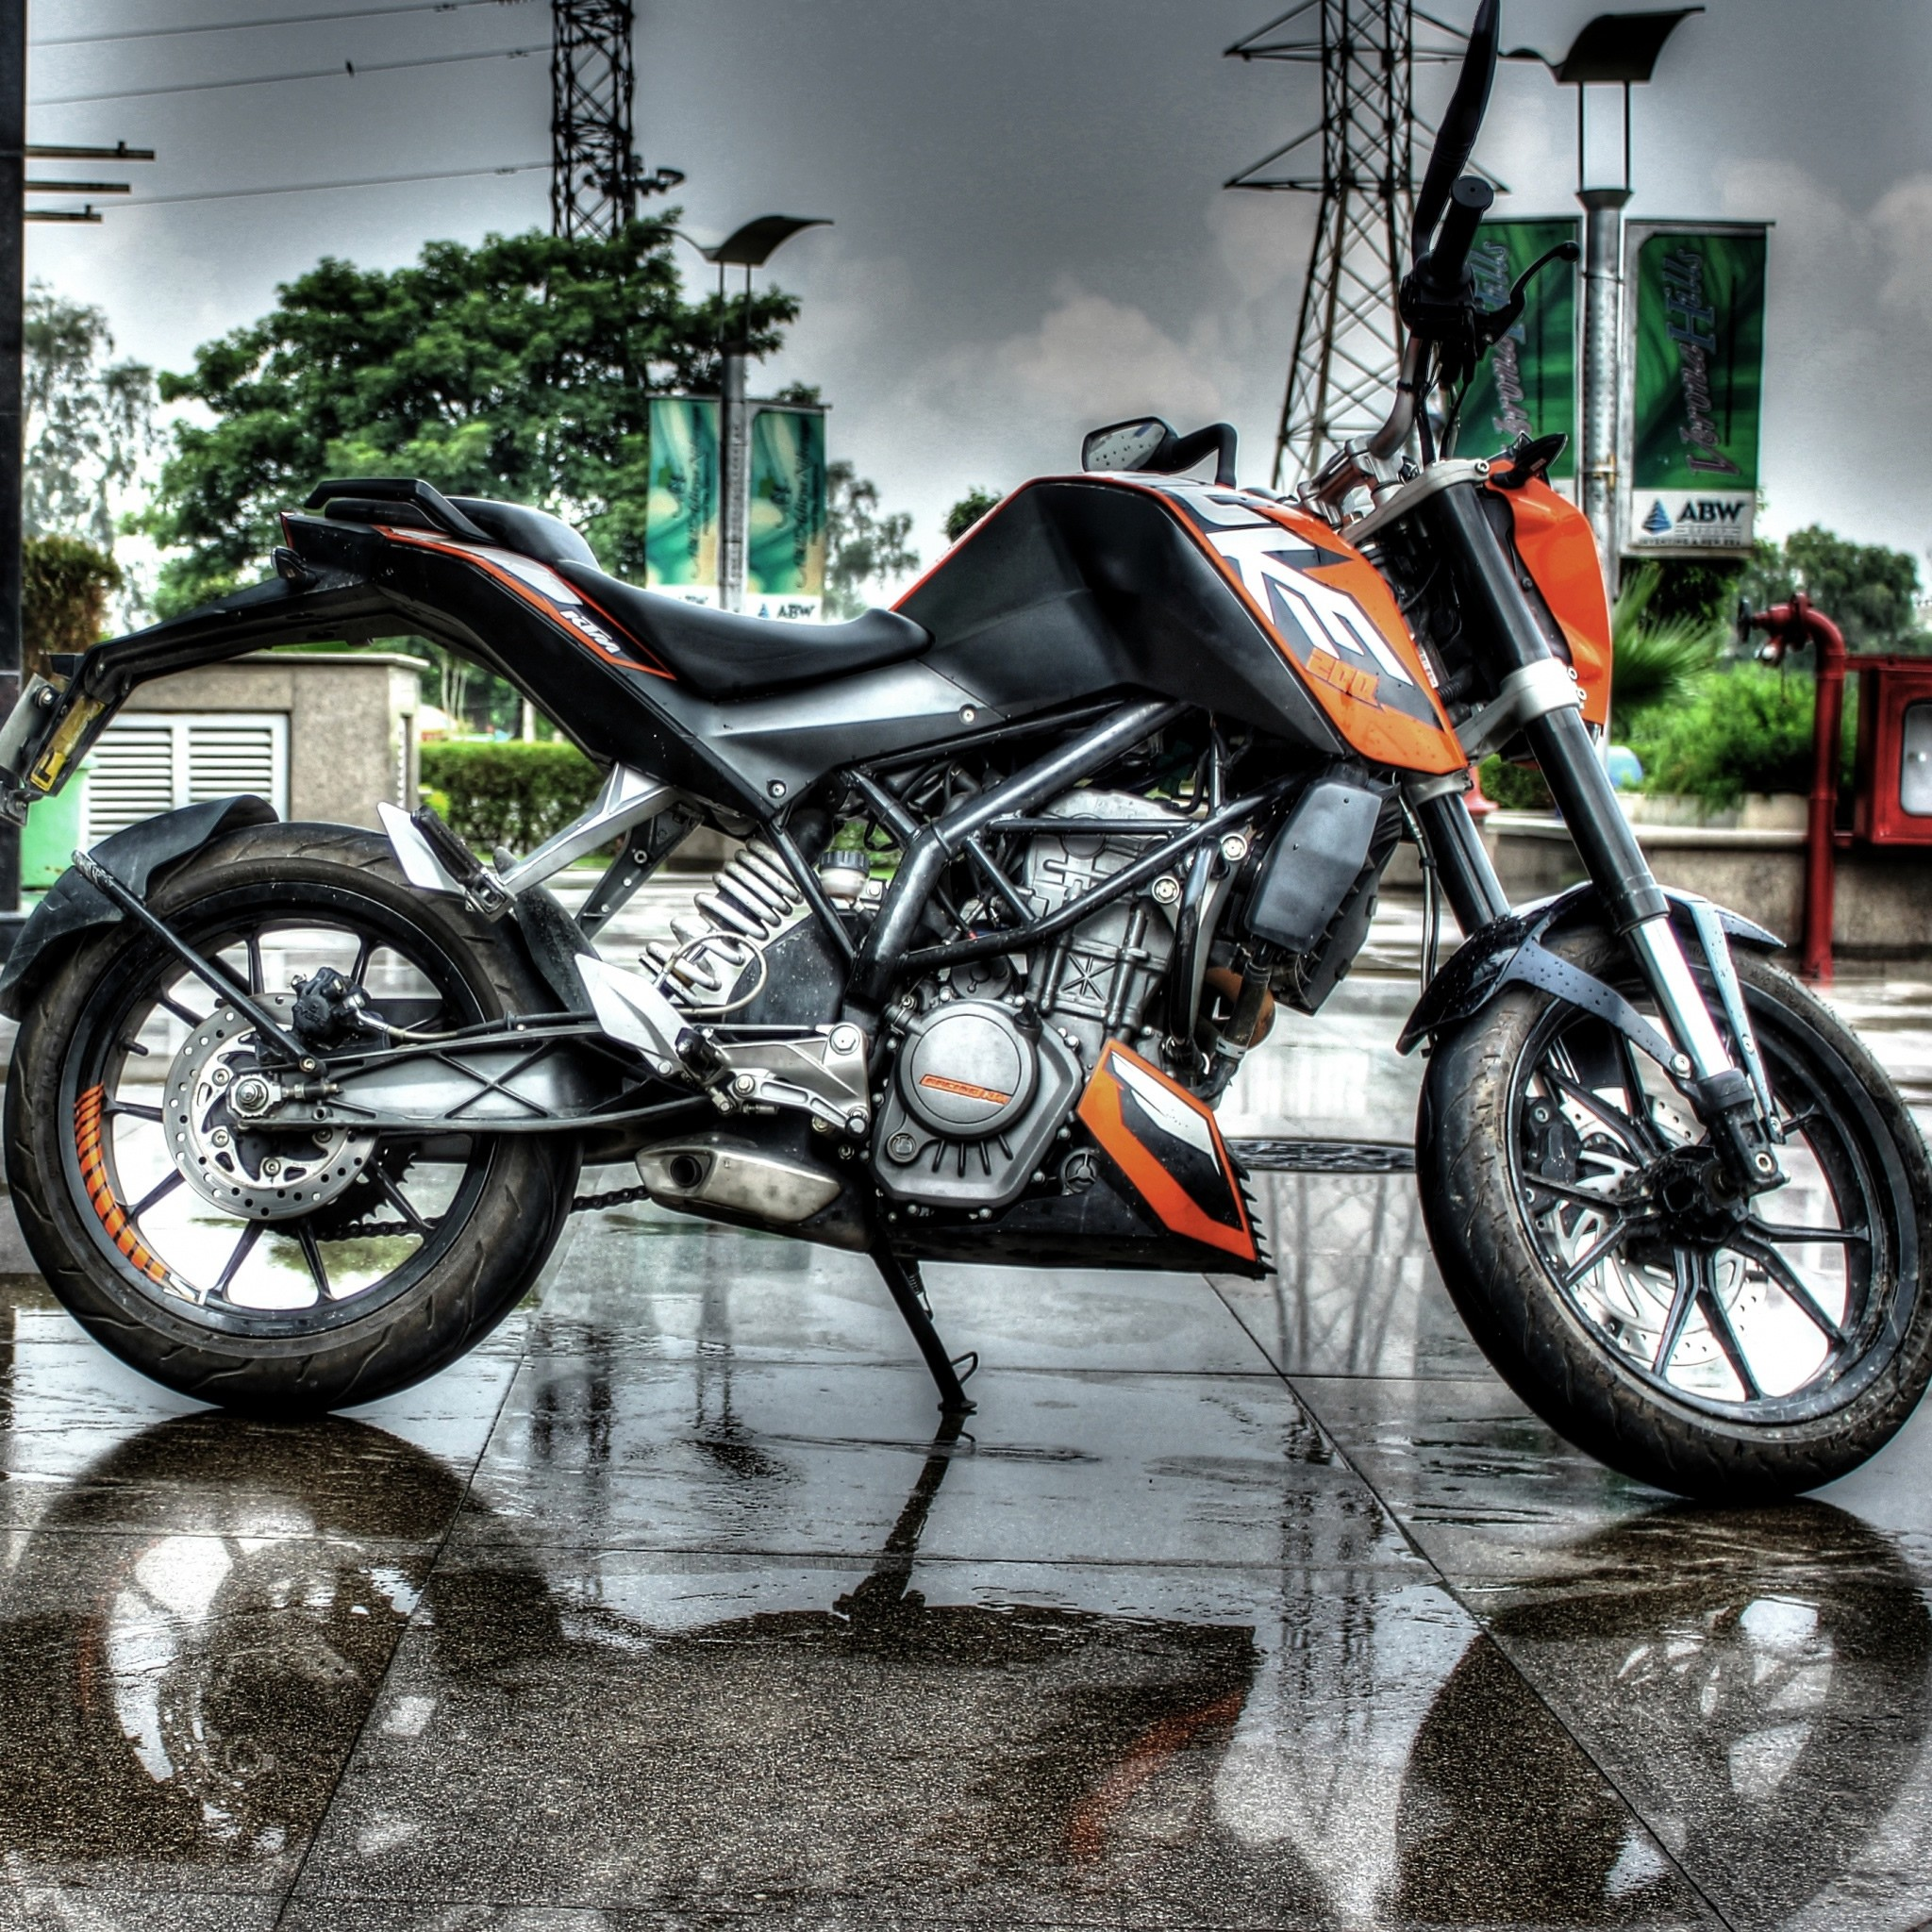 DUKE 200 Hdr Bike Photography